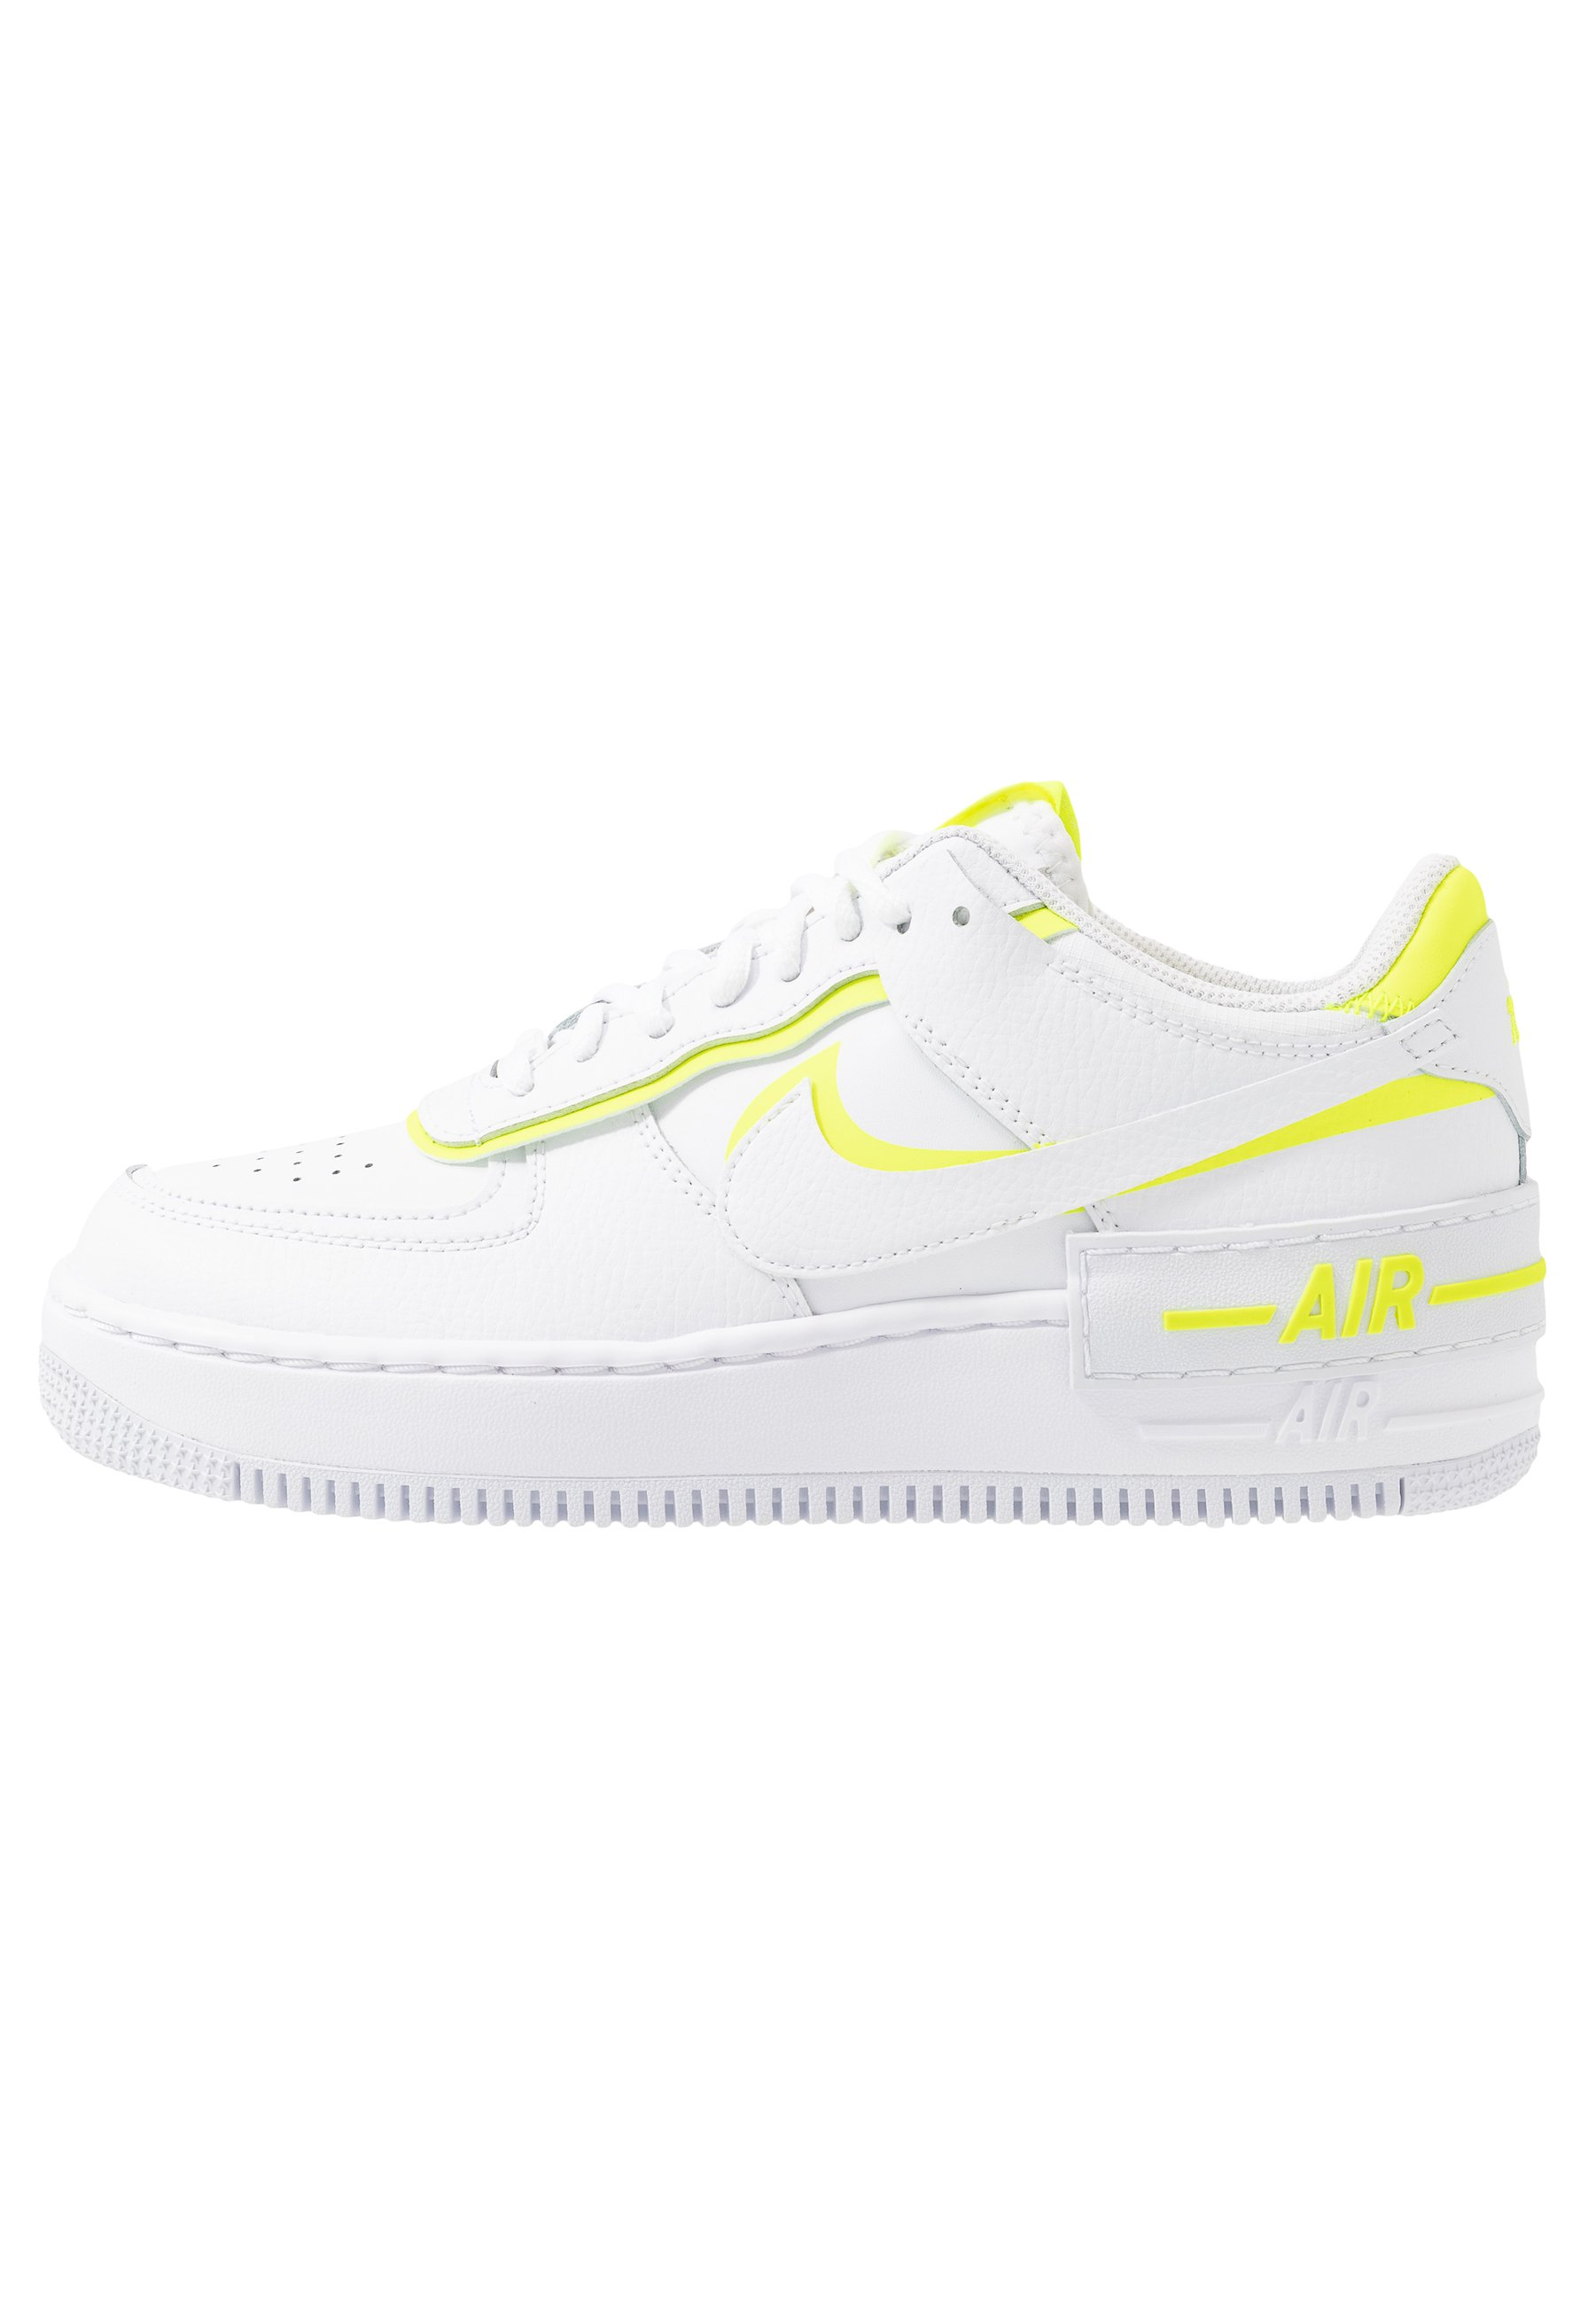 nike air force 1 donna bianche basse